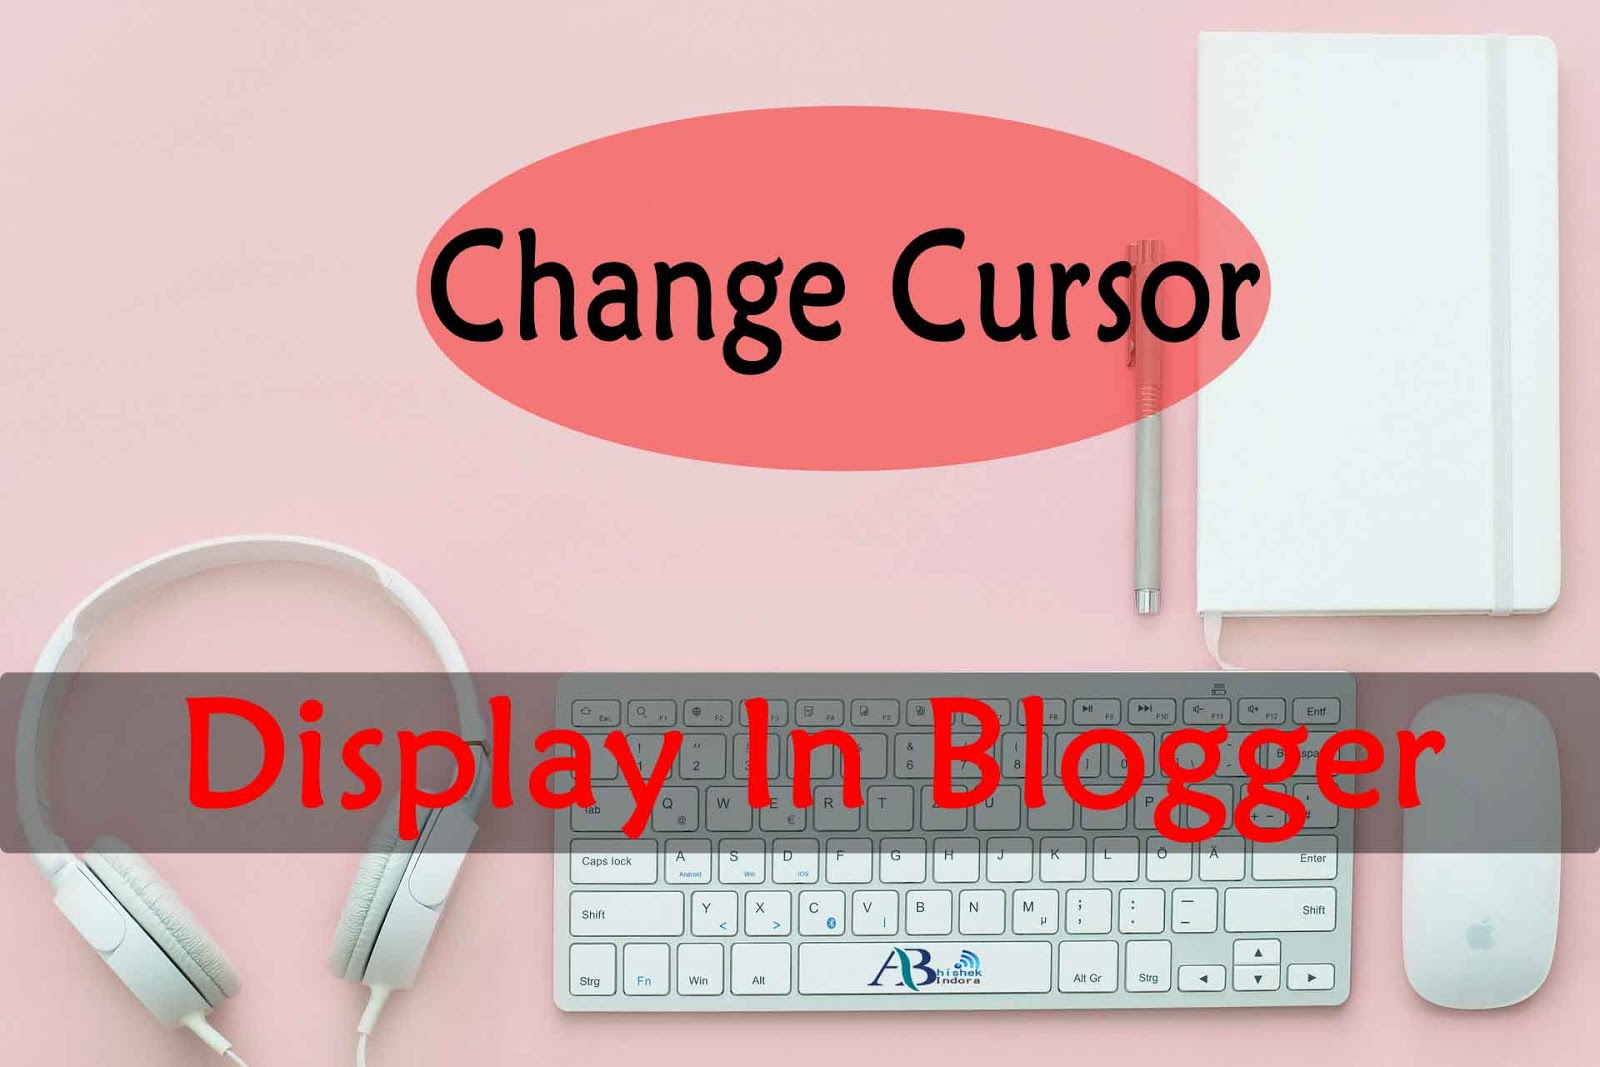 change cursor display in blogger, how to change cursor display in blogger